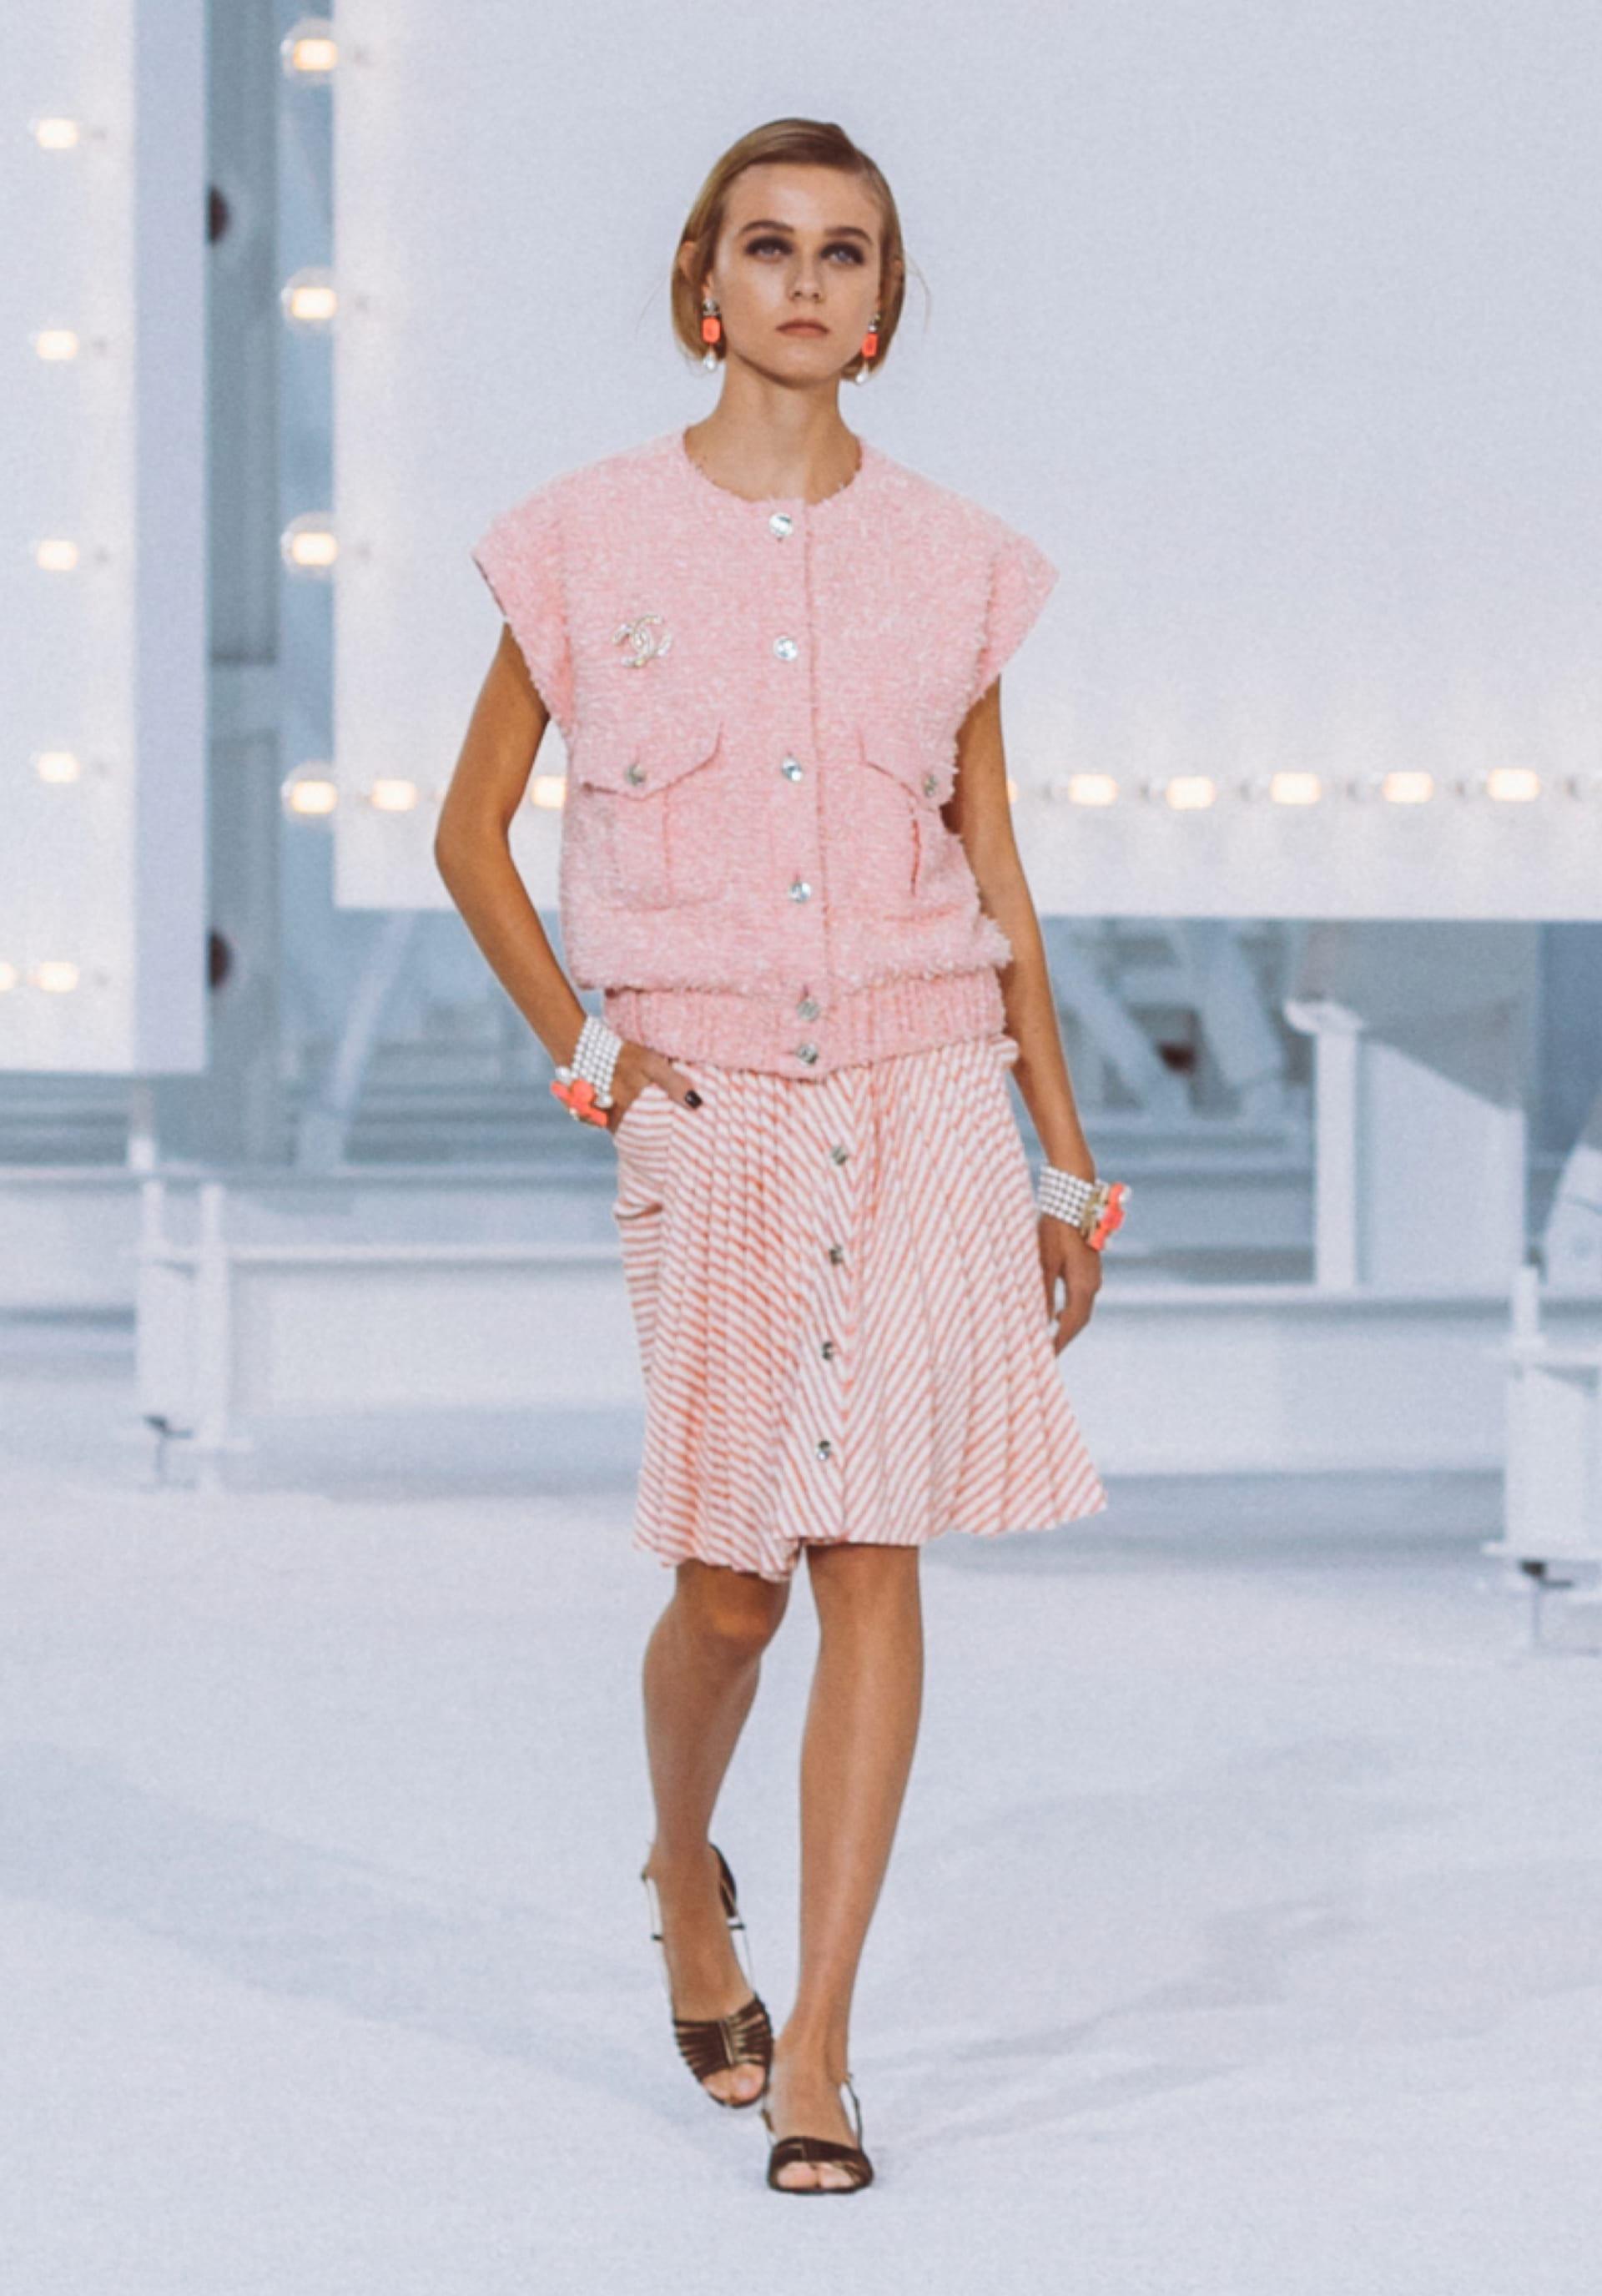 View 1 - Look41 - Spring-Summer 2021 - see full sized version